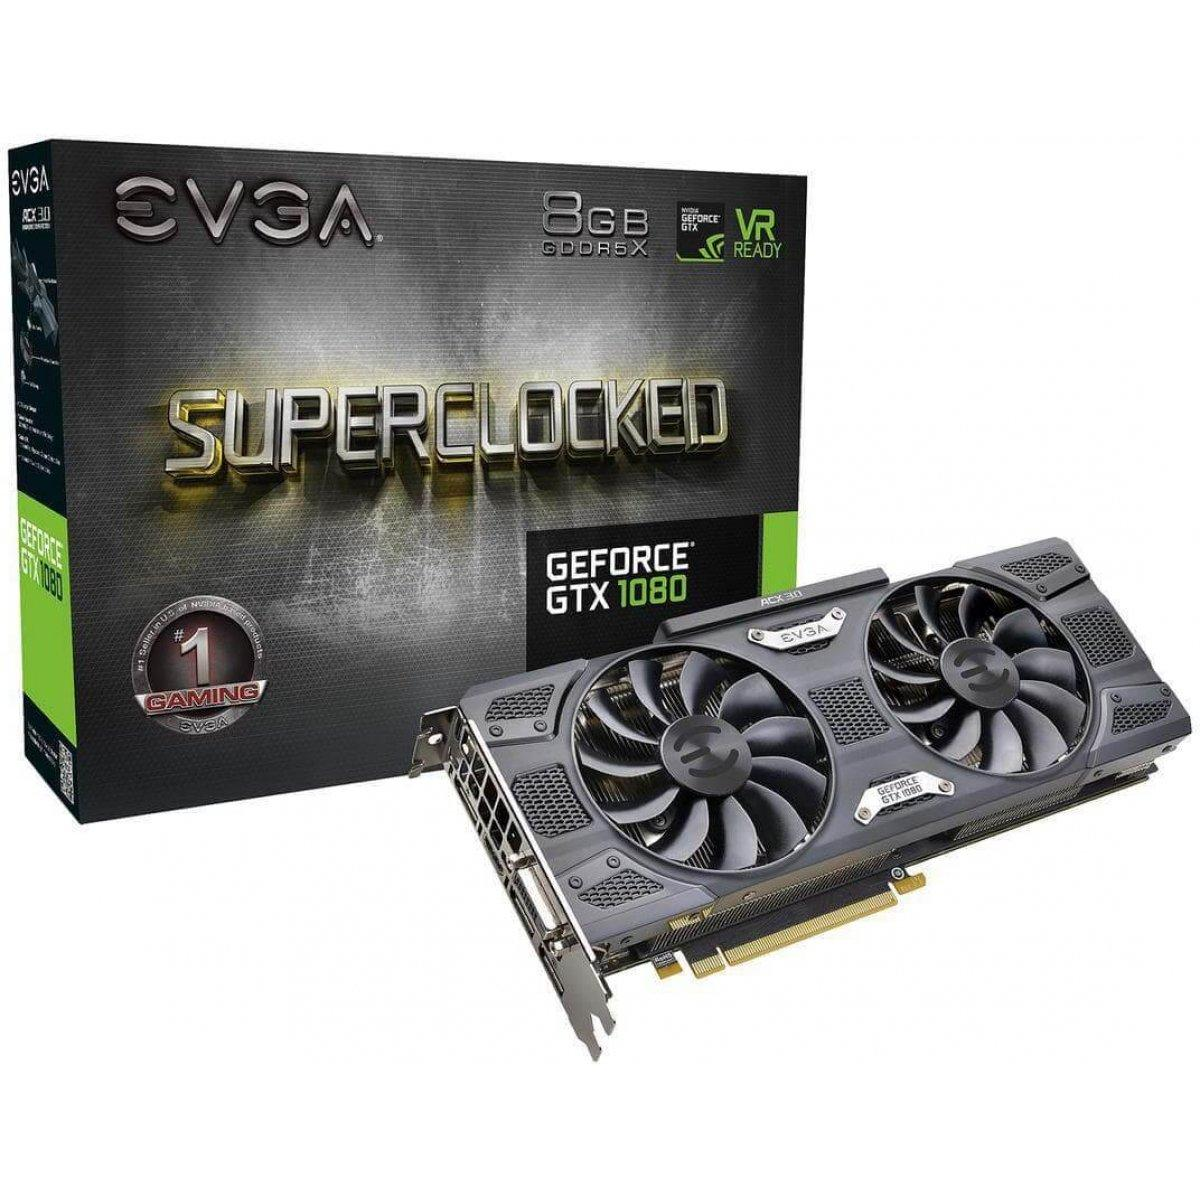 EVGA GEFORCE GTX 1080 5186-KR